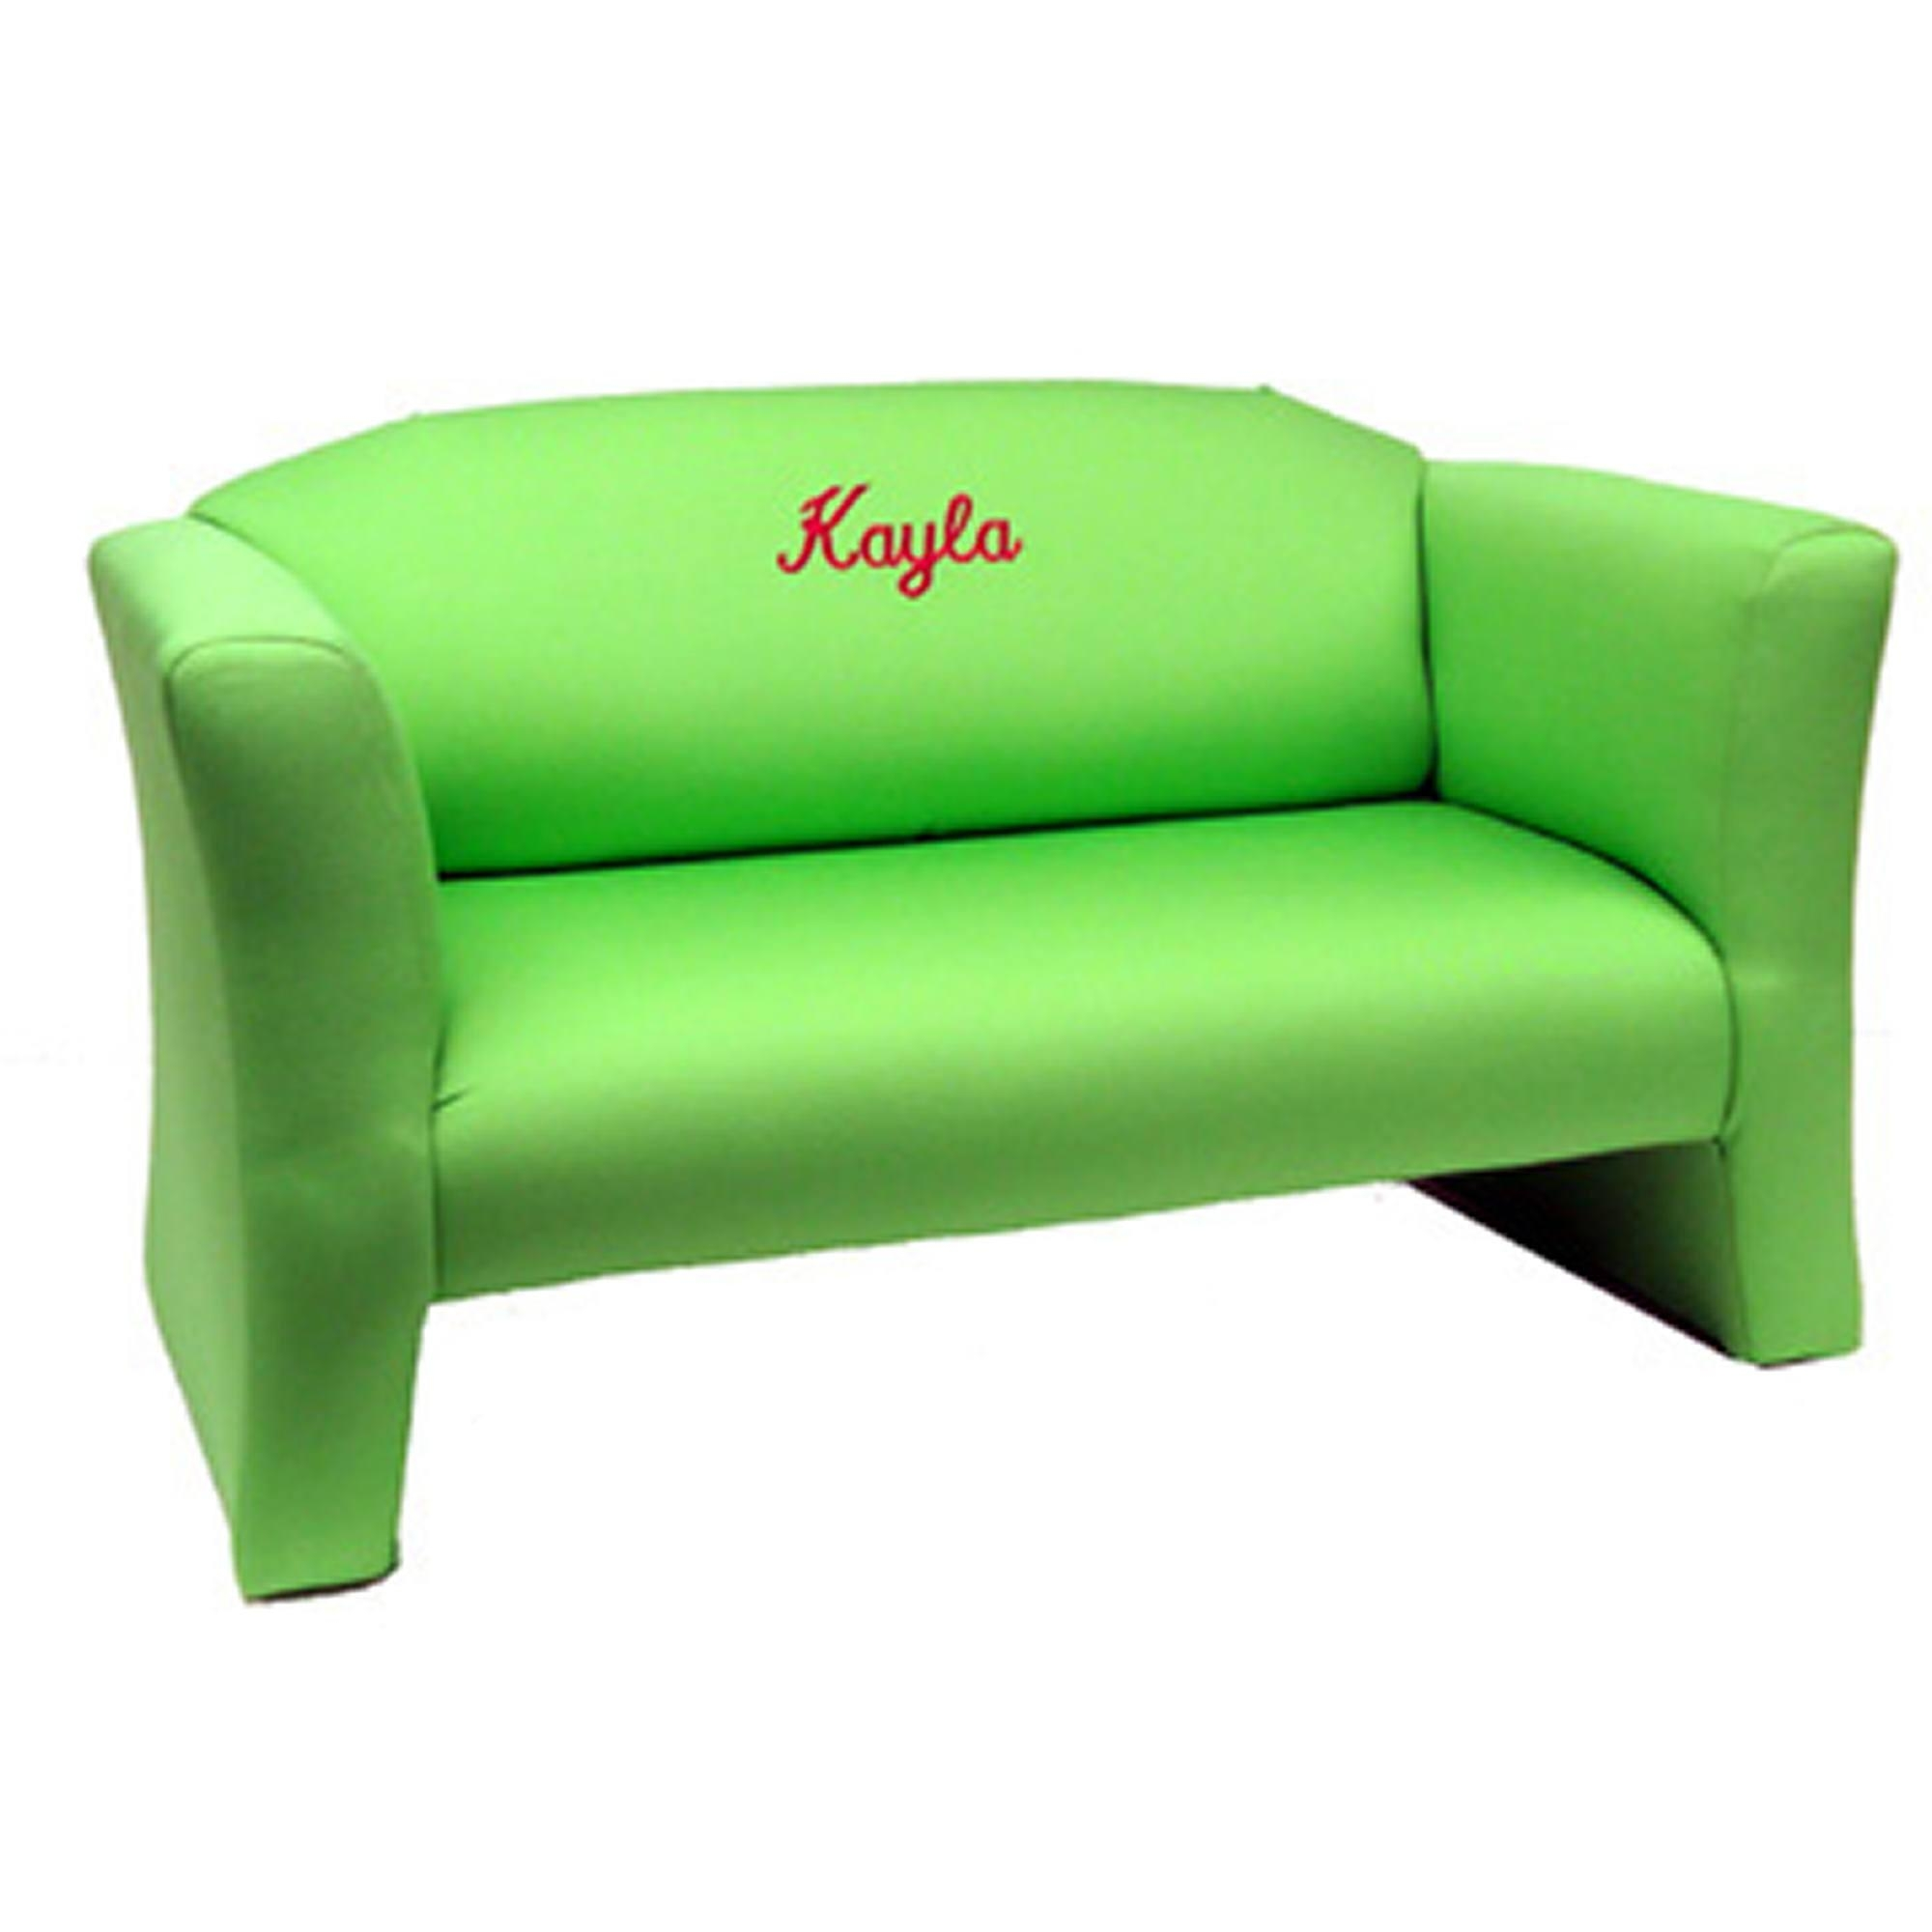 Personalized Kid's Queen Anne Sofa | Kids Couches In Personalized Kids Chairs And Sofas (Image 5 of 20)